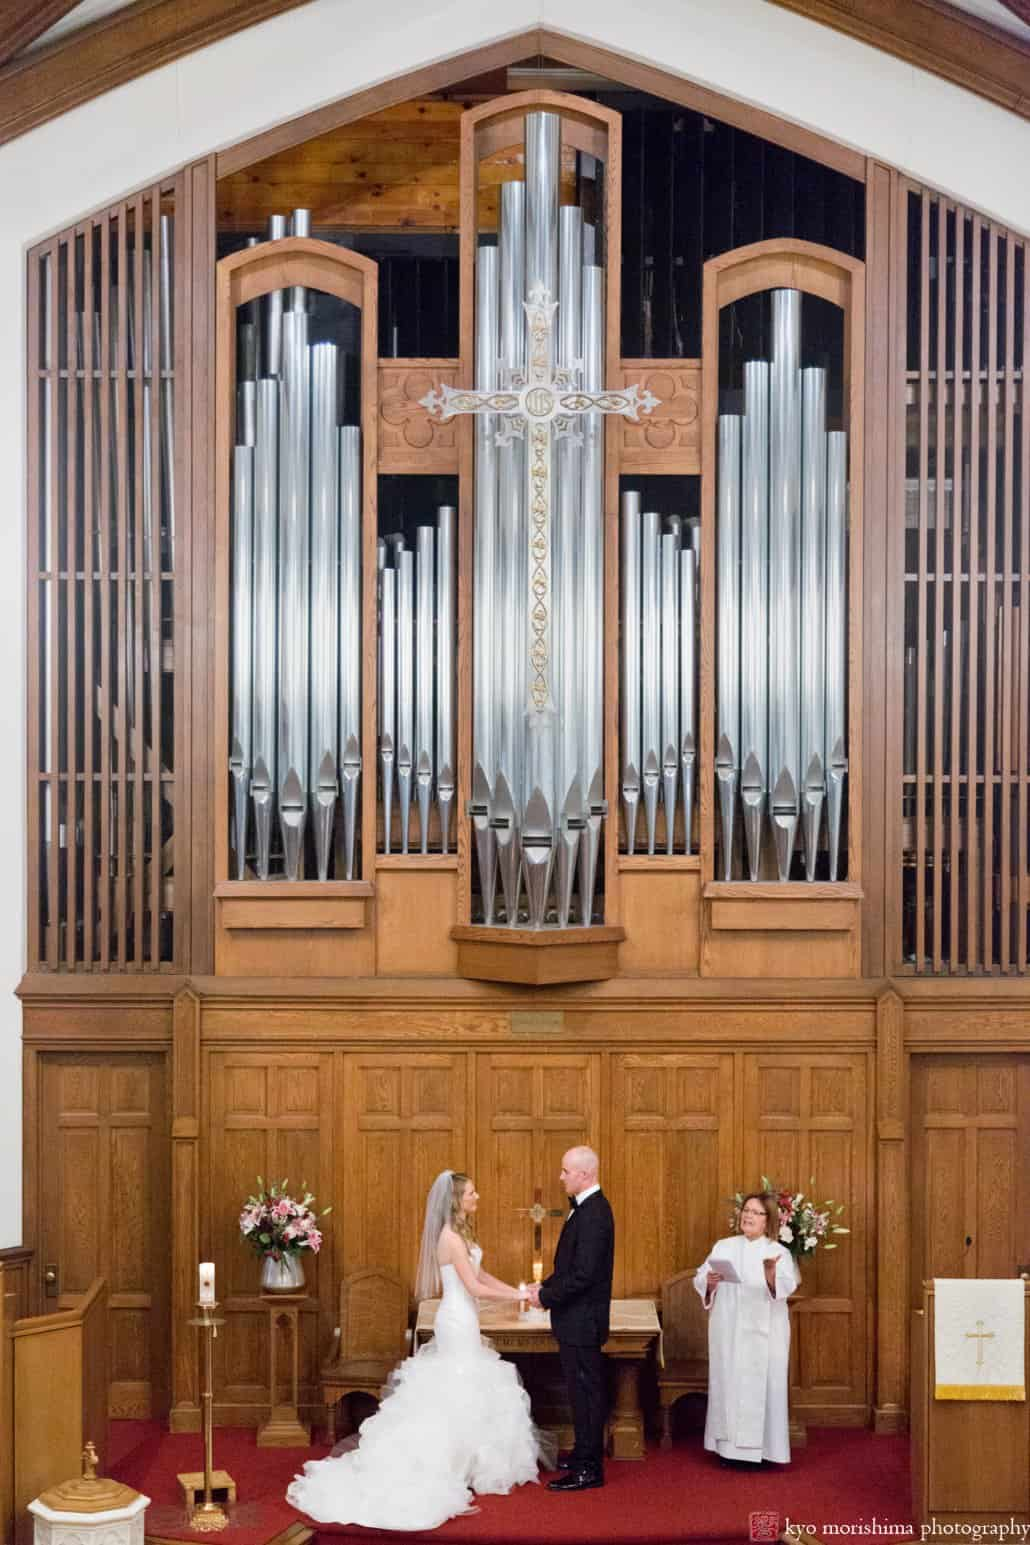 A wide view of bride and groom at the altar framed by organ pipes, photographed by Princeton United Methodist Church wedding photographer Kyo Morishima